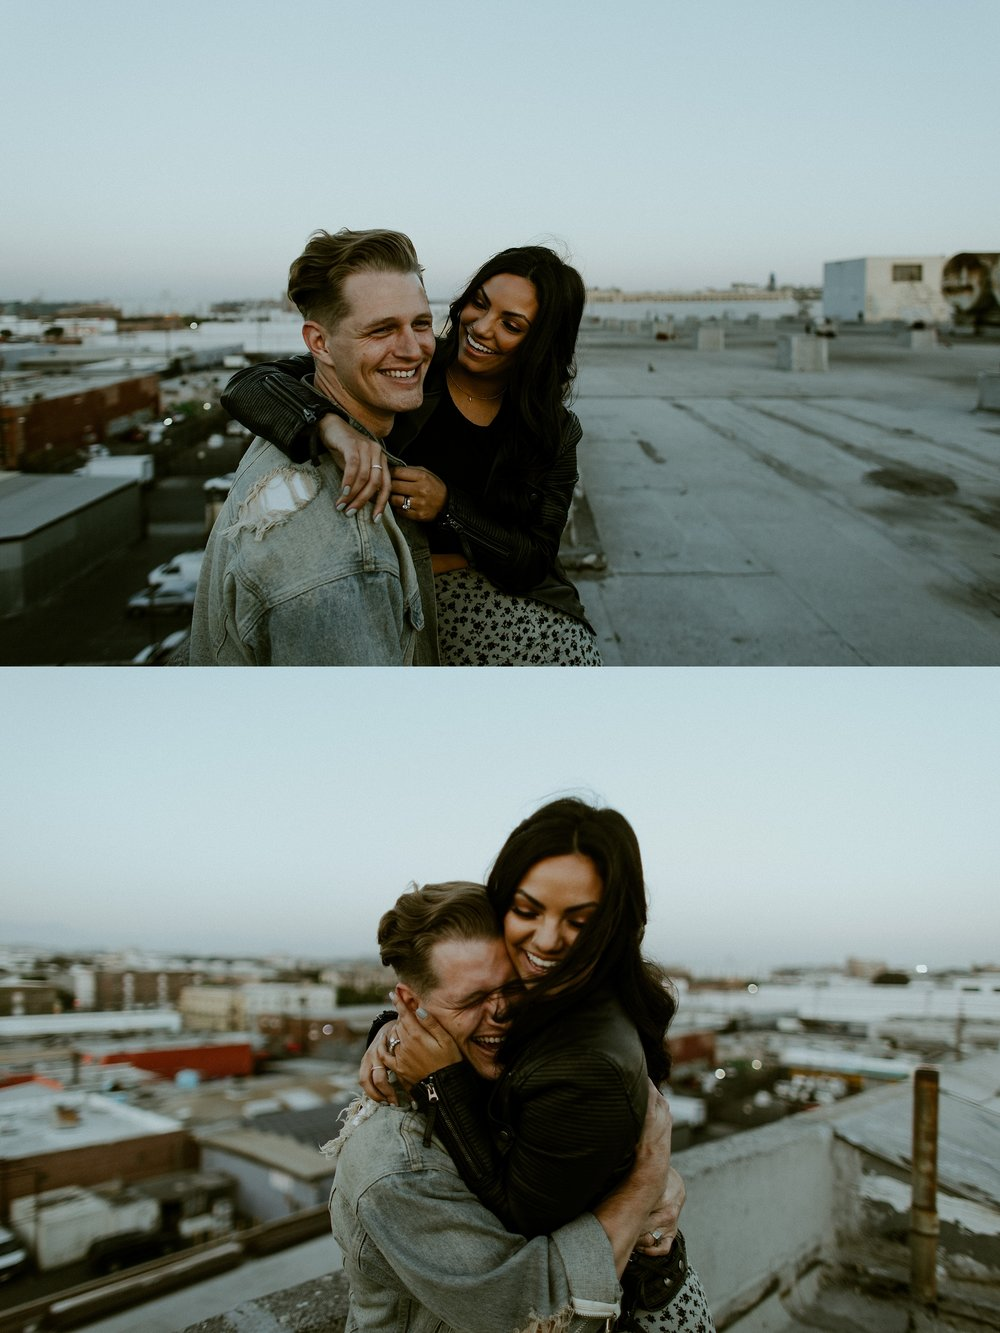 DTLA Rooftop Engagement Session by Trin Jensen Photography  - Los Angeles Wedding Photographer_0042.jpg